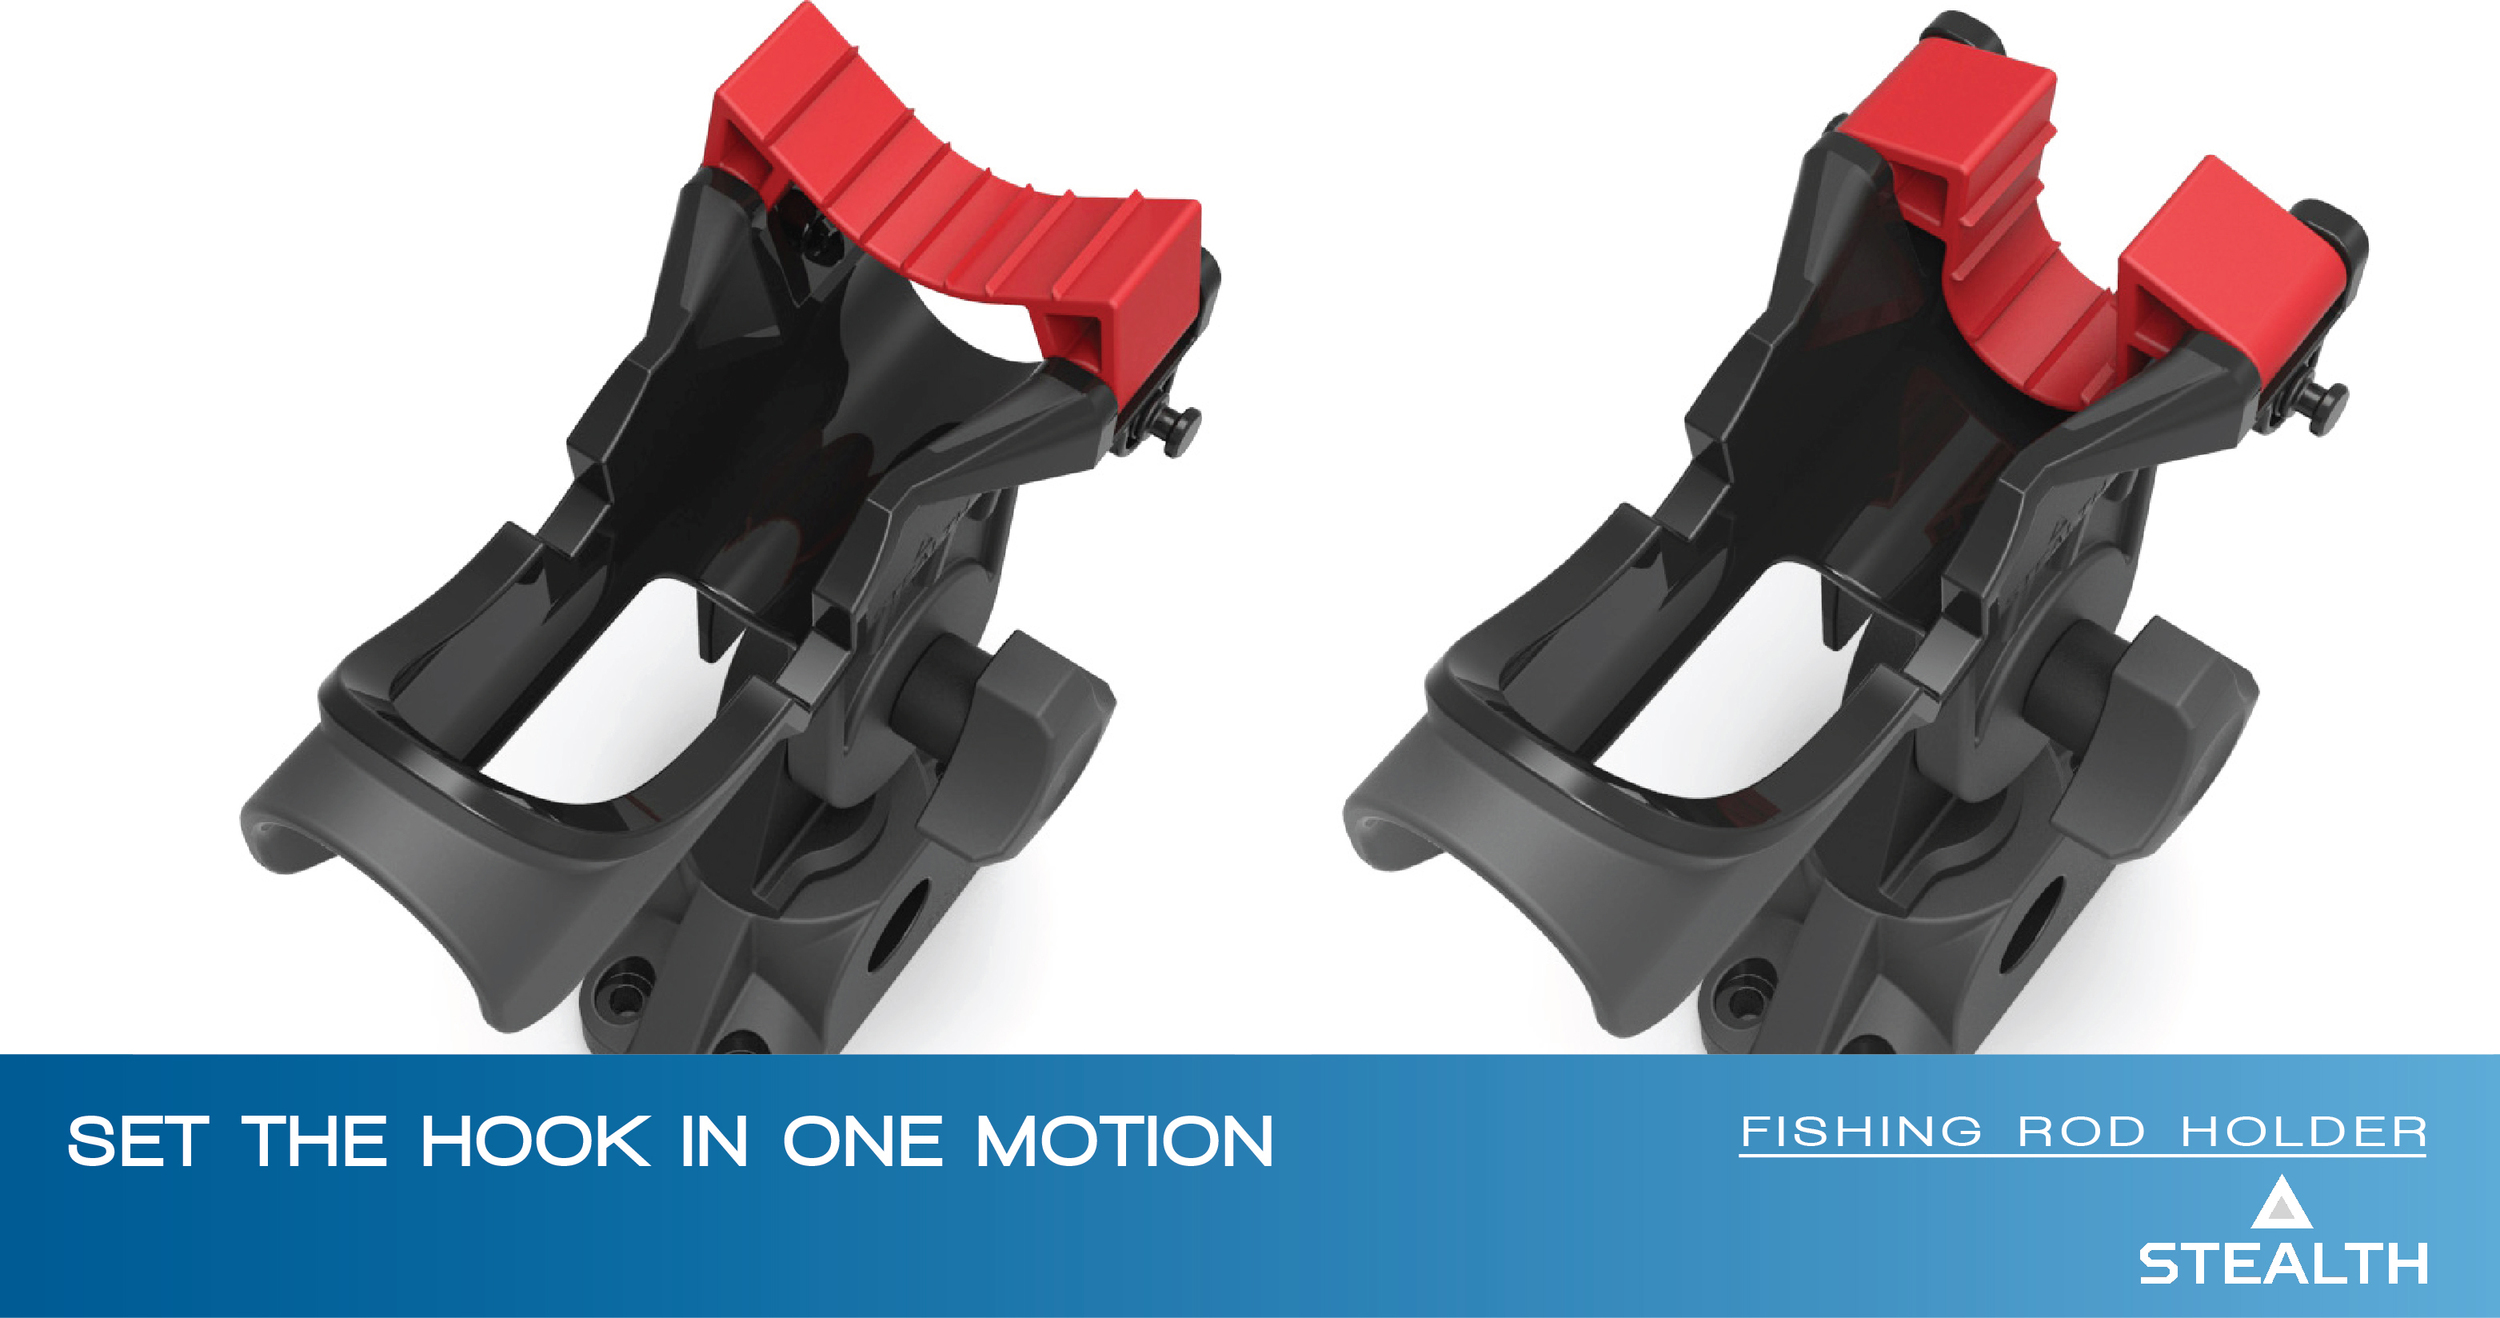 Stealth Quick Release - Launch Innovation